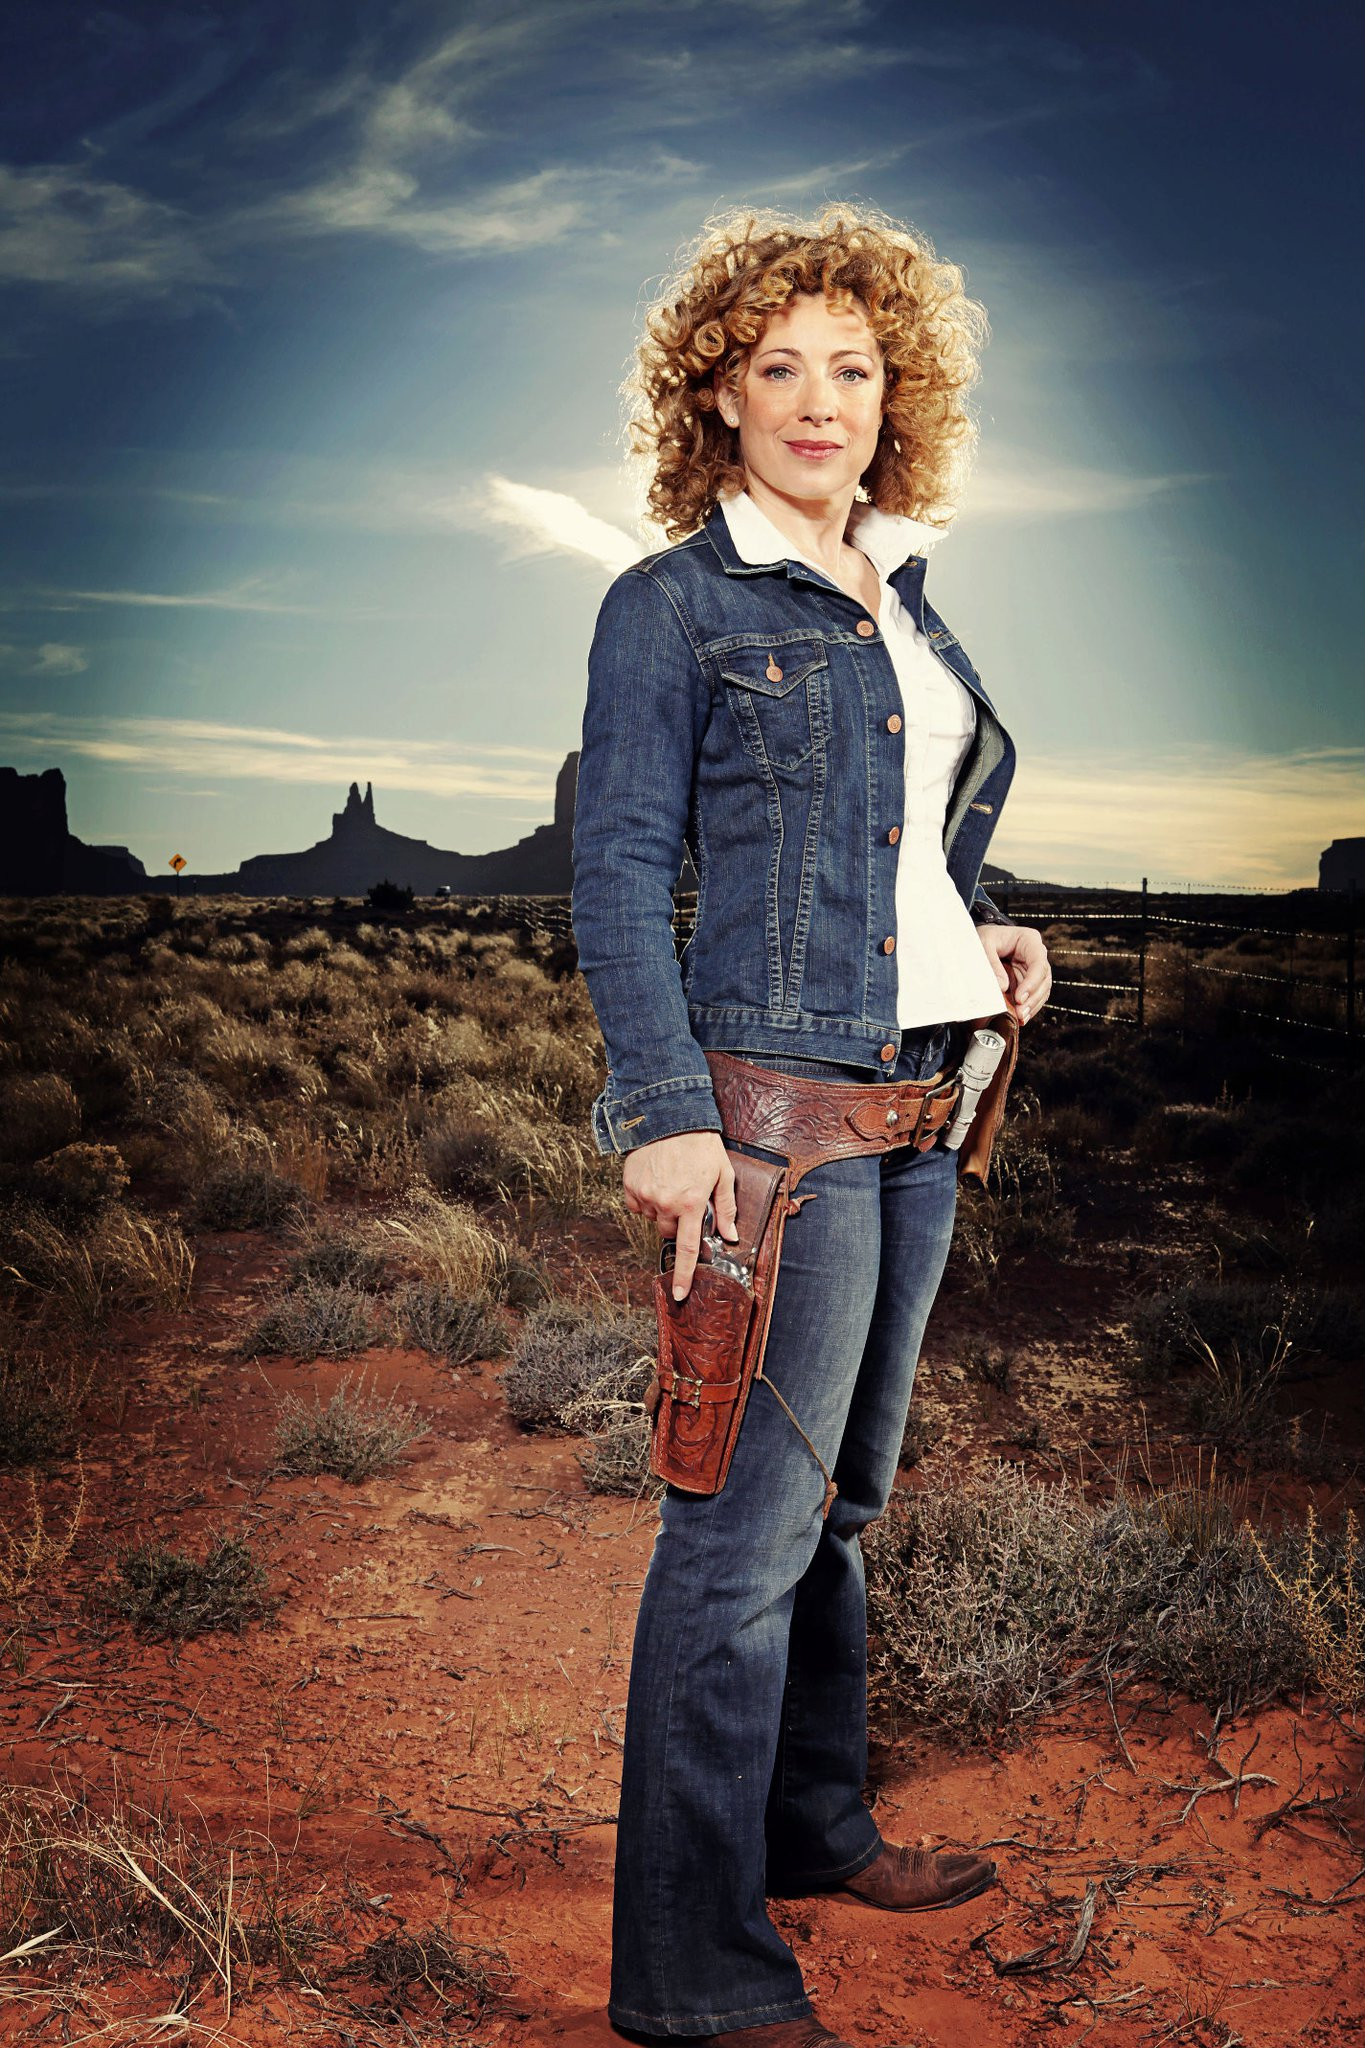 Doctor Who' Christmas Special: River Song & 12th Doctor Romance ...